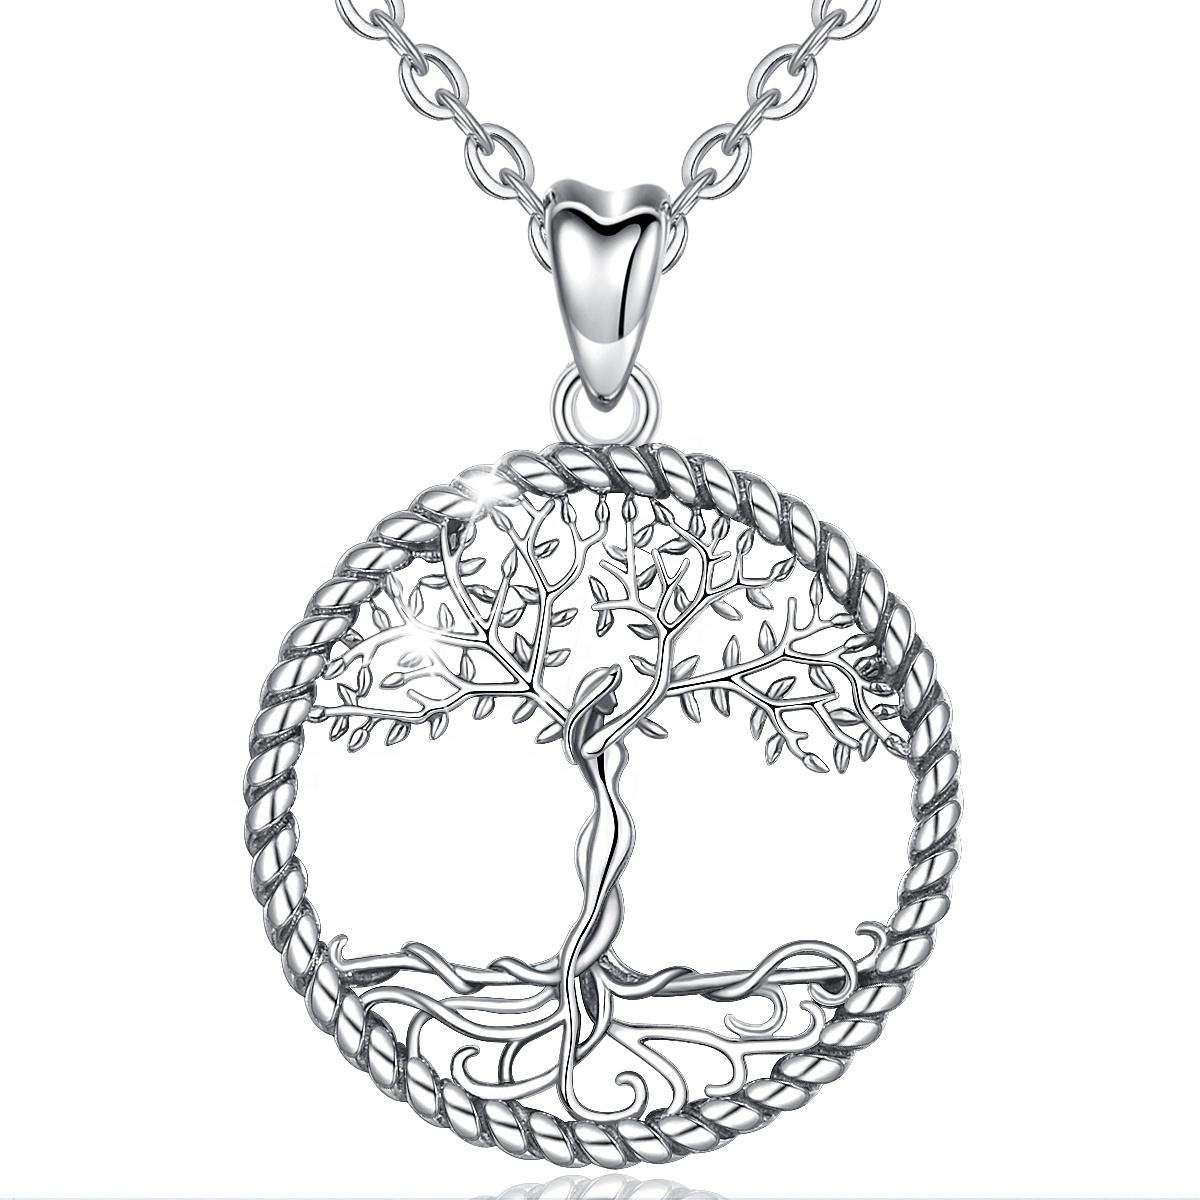 Merryshine Lucky Custom 925 Sterling Silver Tree Of Life Pendant Necklace for Girlfriend Women